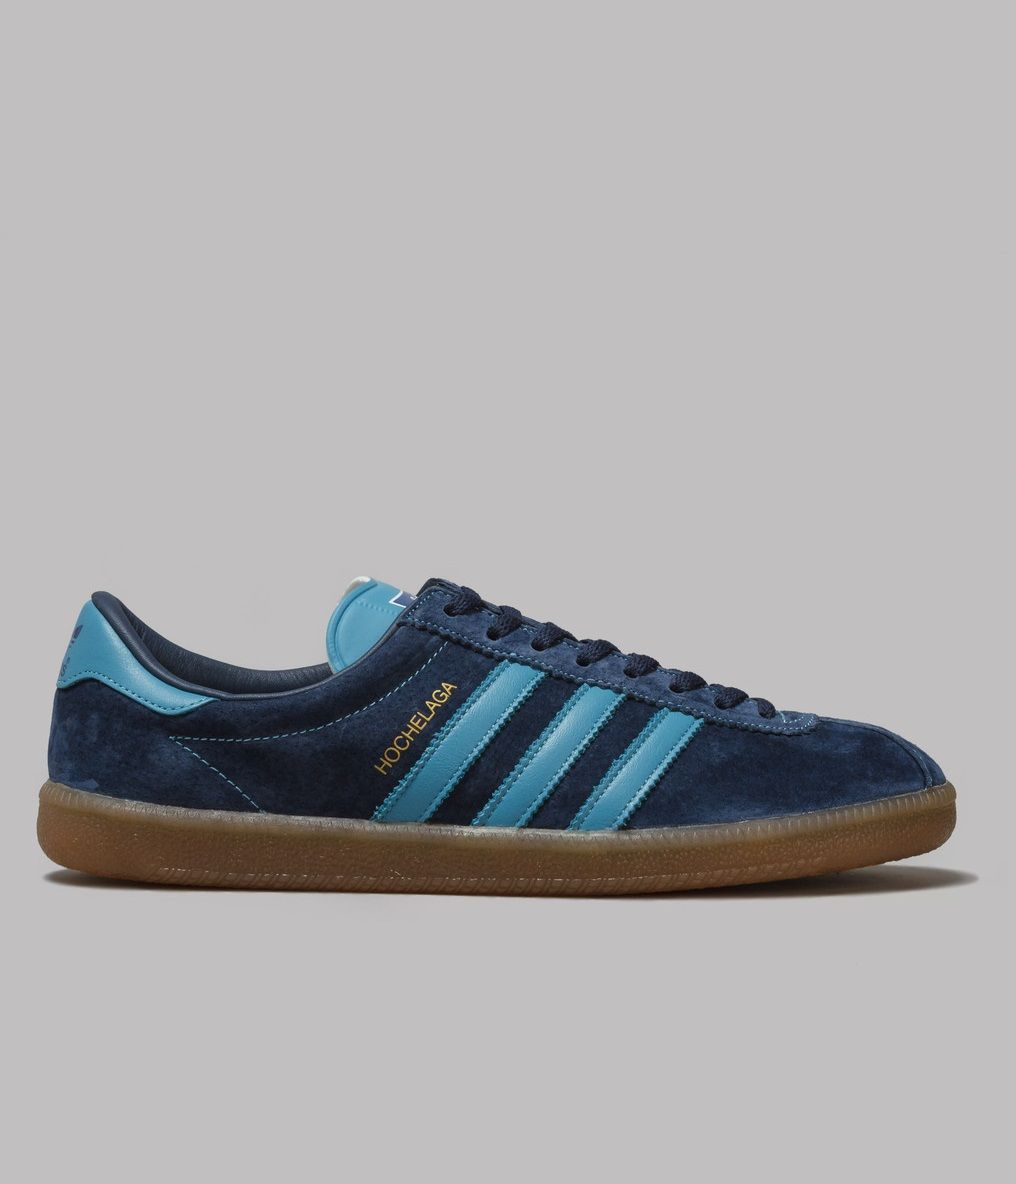 adidas Originals Hochelaga SPZL: Blue/Navy